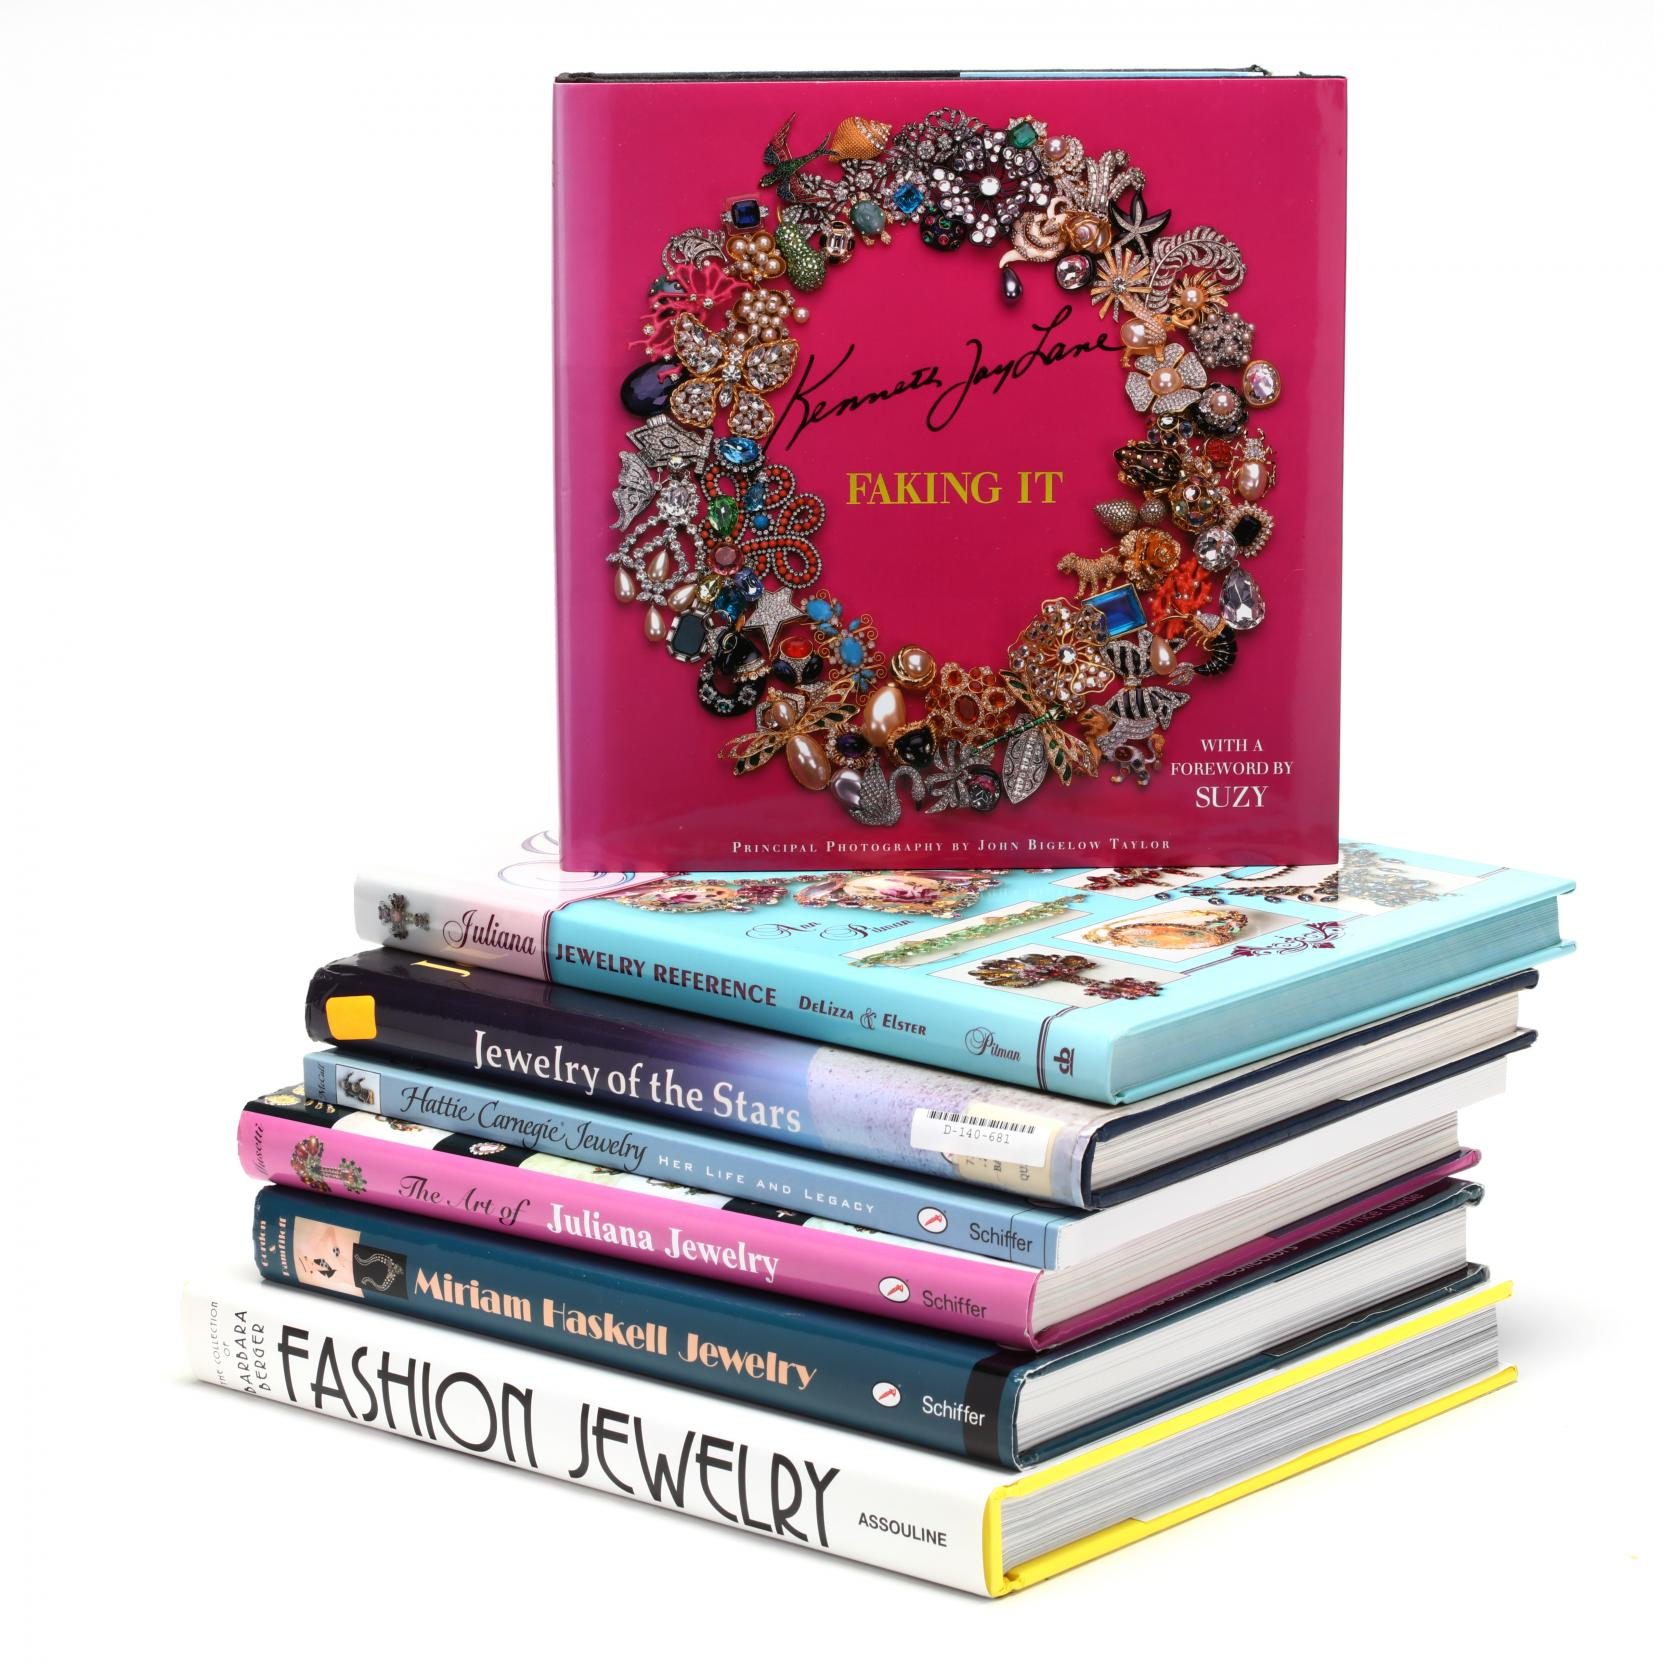 group-of-costume-jewelry-books